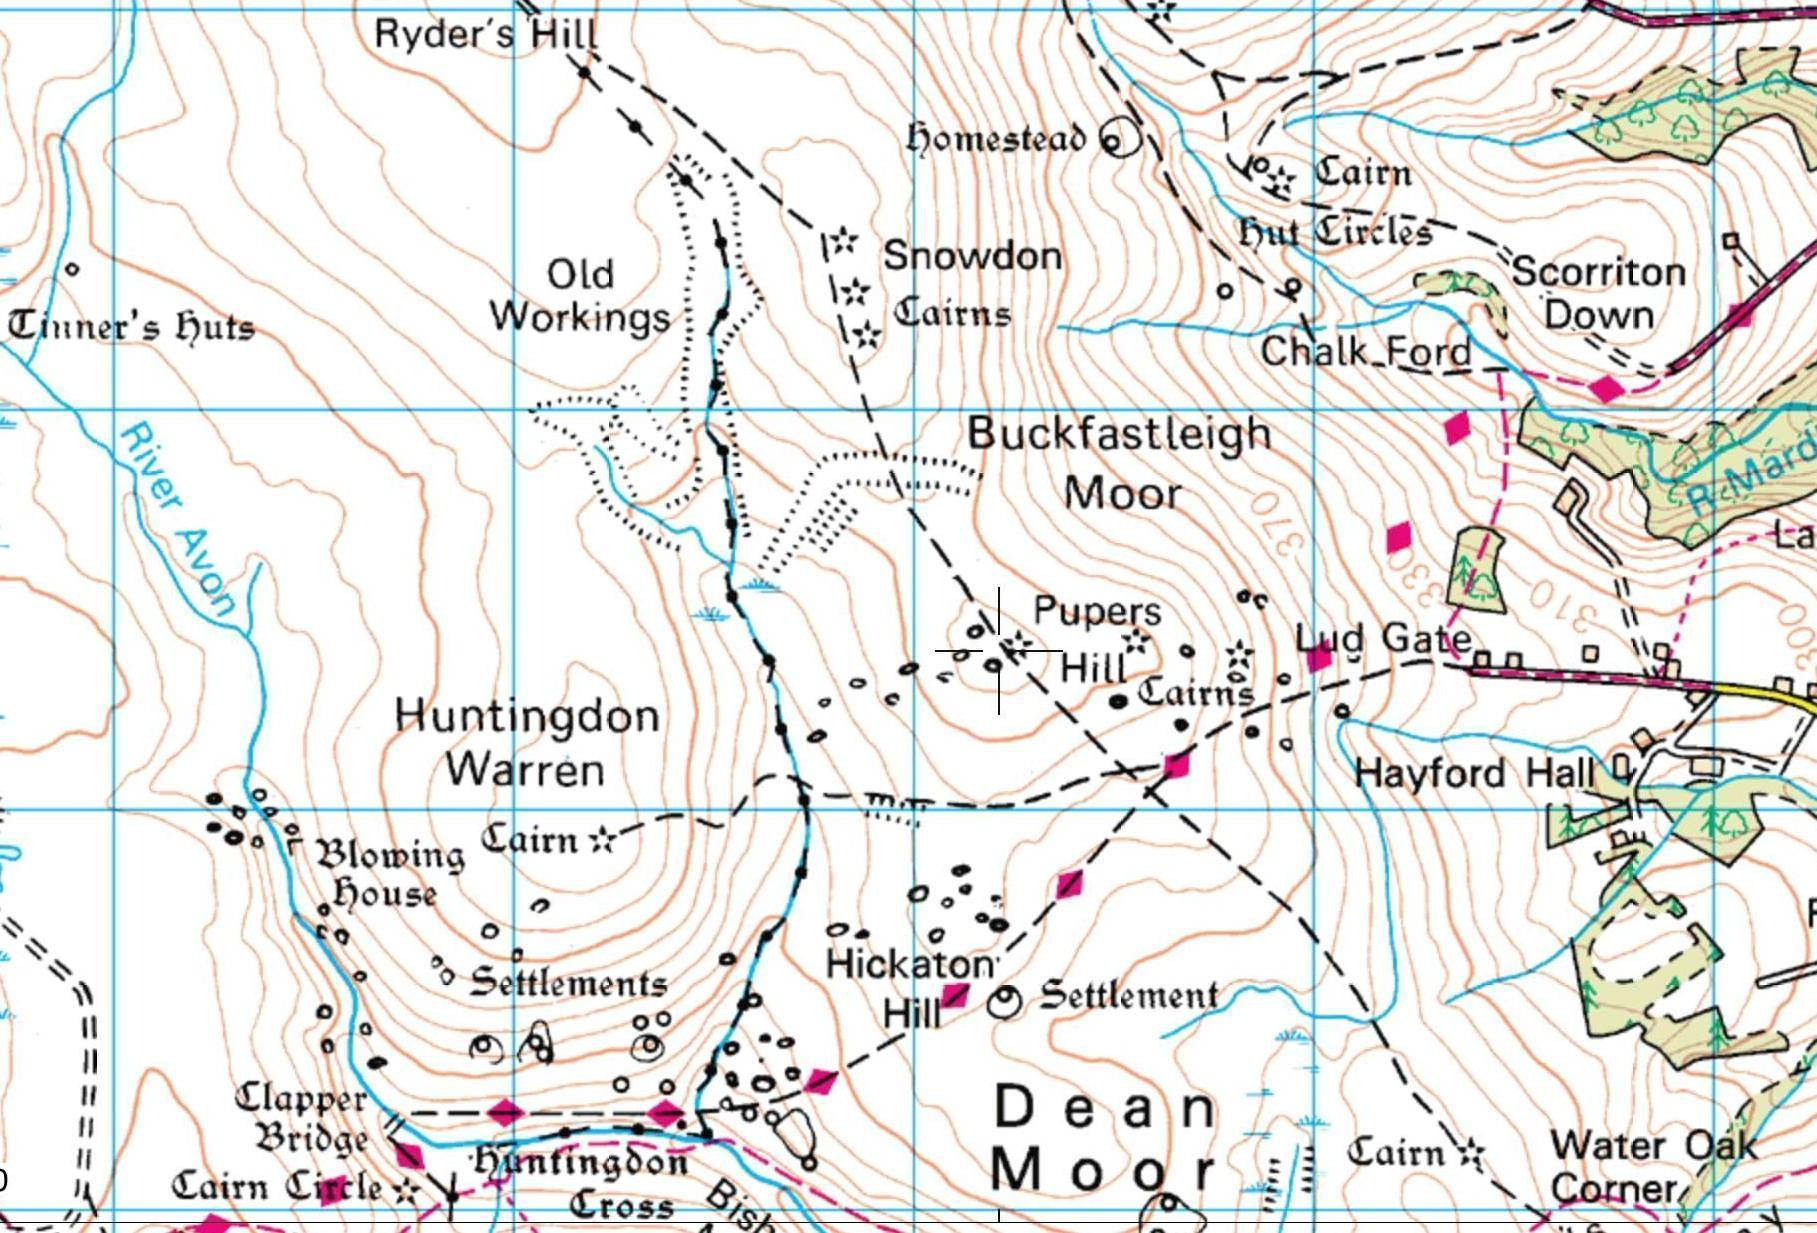 Dartmoor Search and Rescue Ashburton called out to assist a lost walker who had undertaken his walk with no map, caompass, whistle or torch